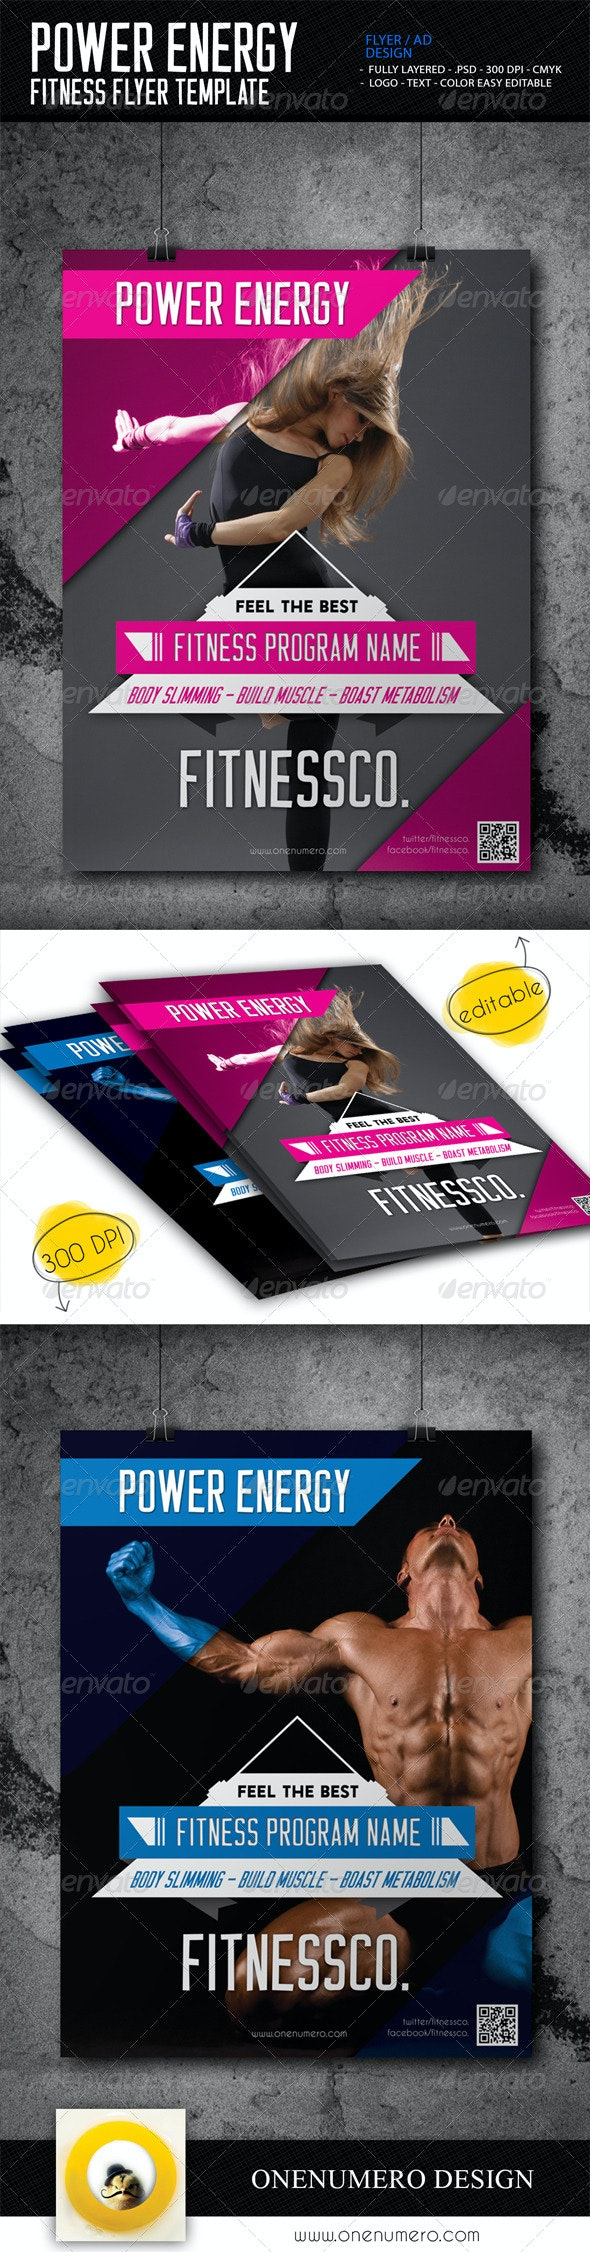 Power Energy Fitness Flyer Template - Sports Events